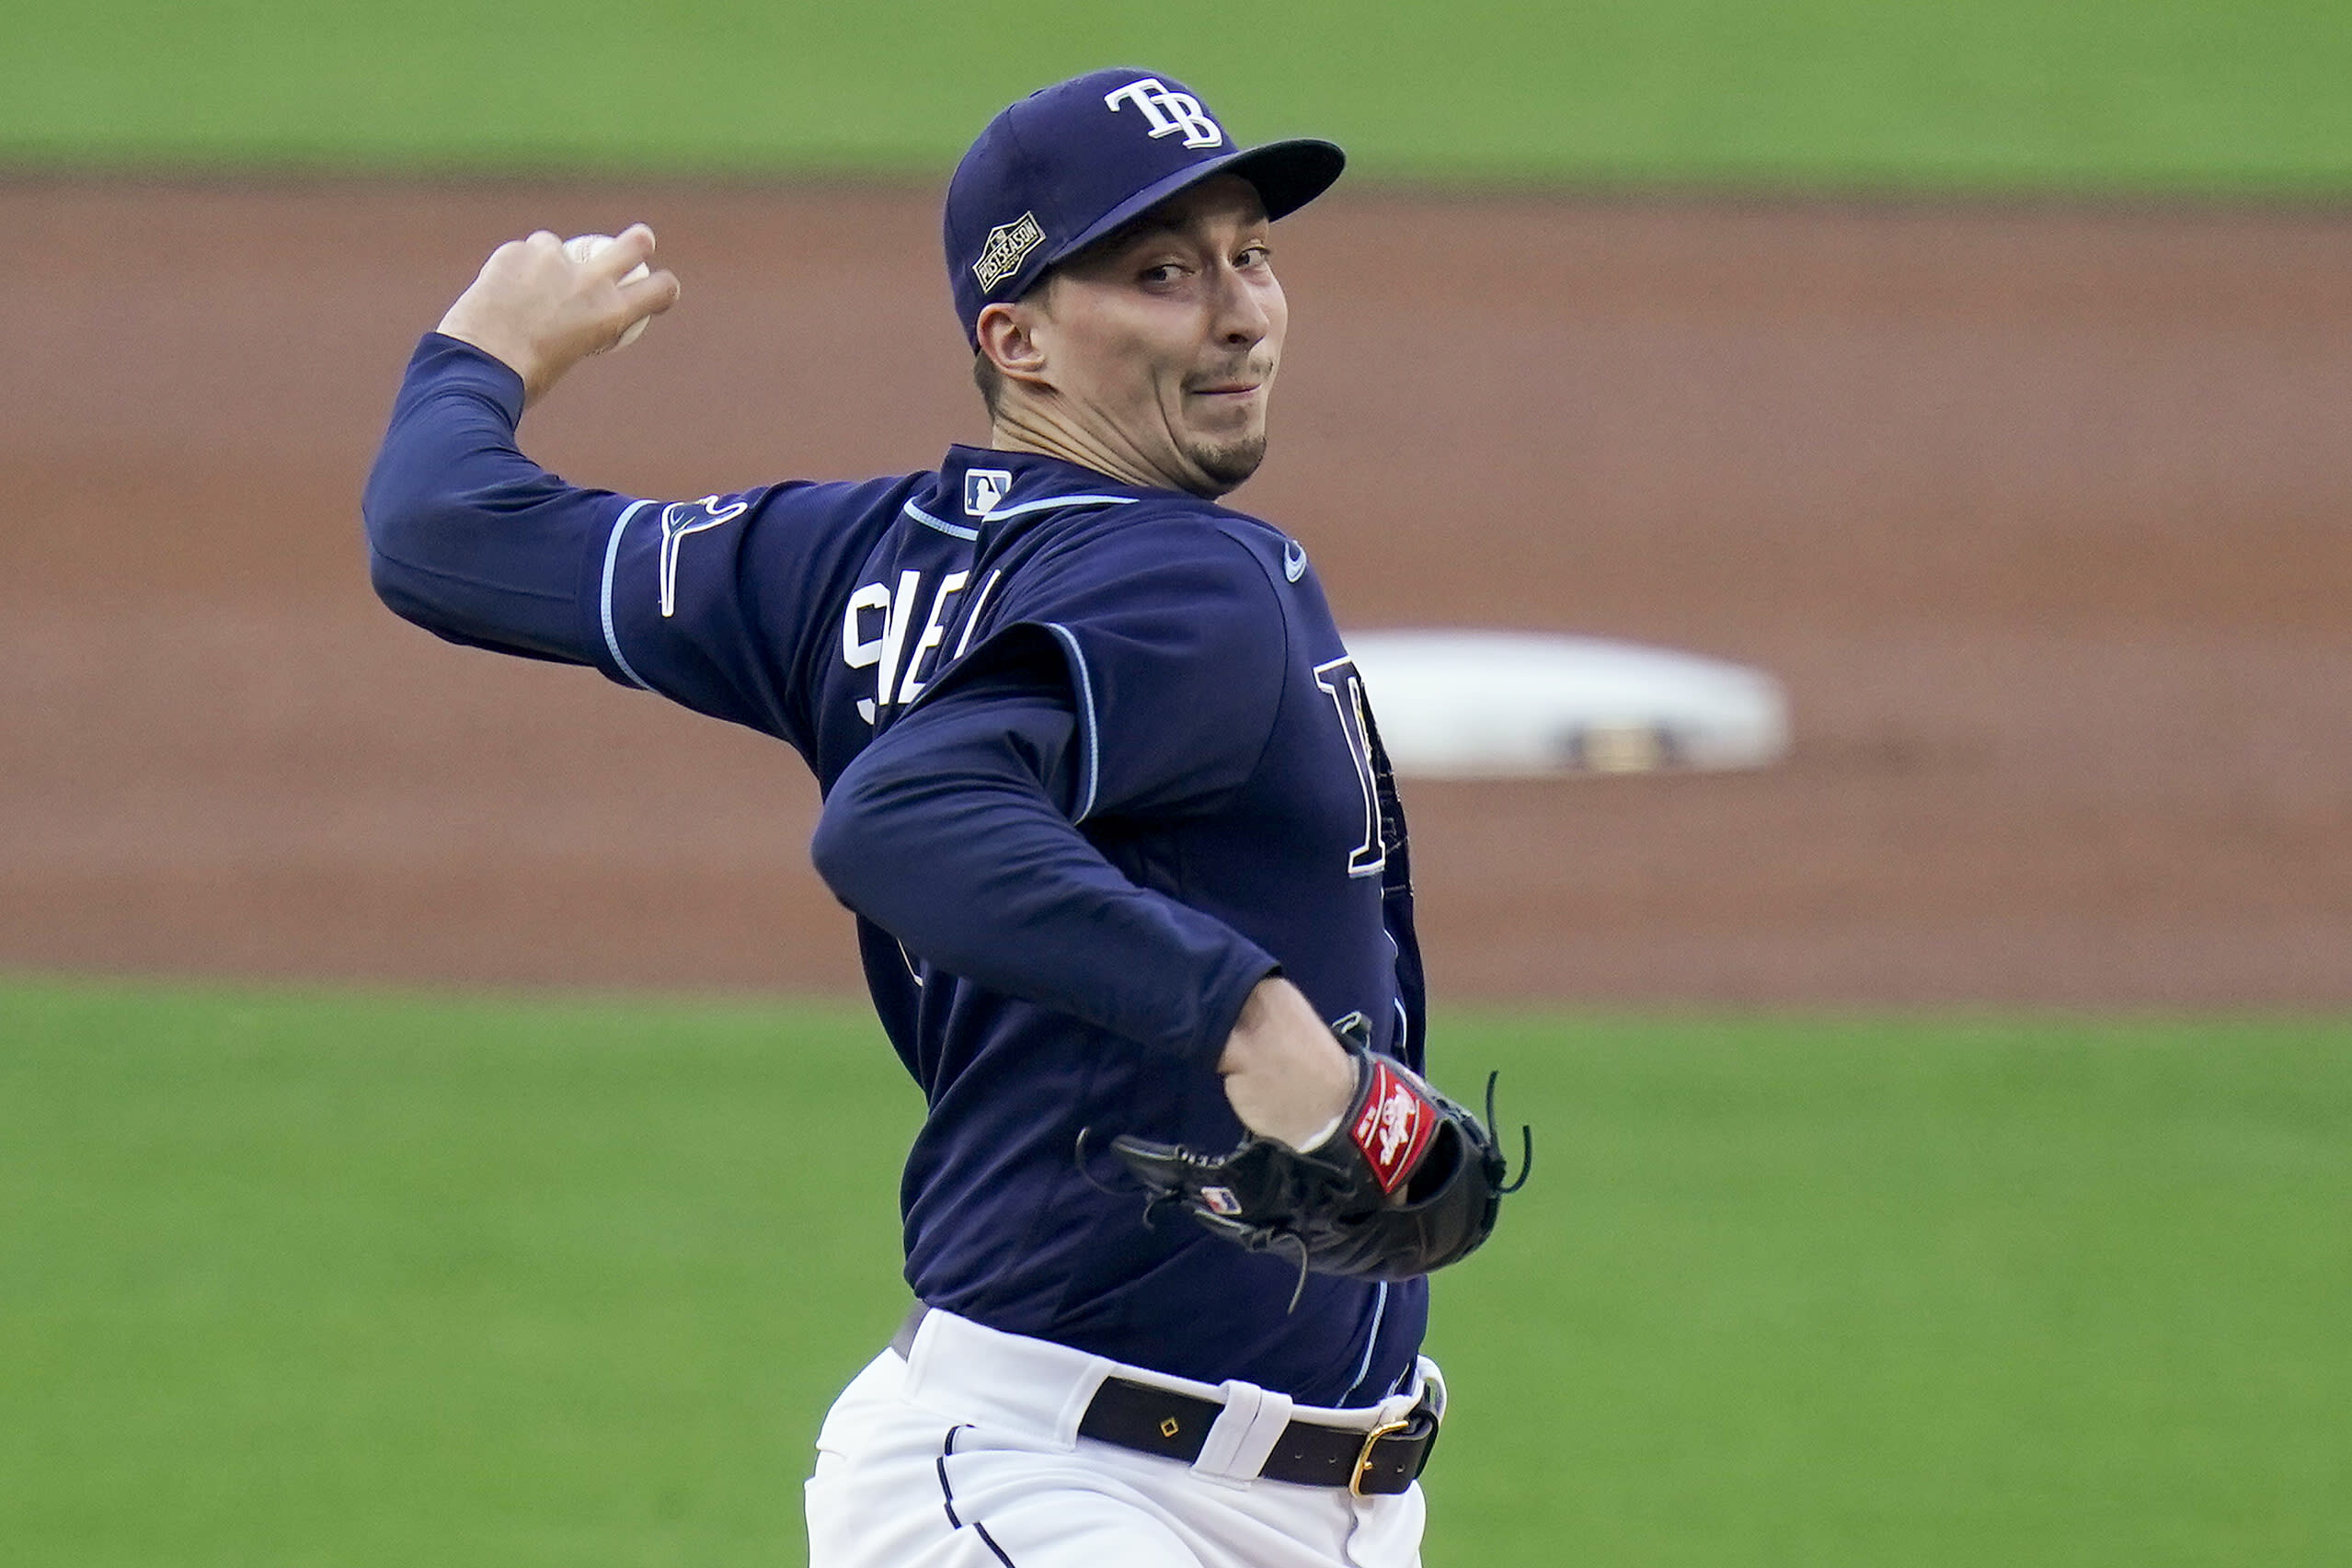 Tampa Bay Rays pitcher Blake Snell delivers against the New York Yankees during the first inning in Game one of a baseball American League Division Series, Monday, Oct. 5, 2020, in San Diego. (AP Photo/Jae C. Hong)